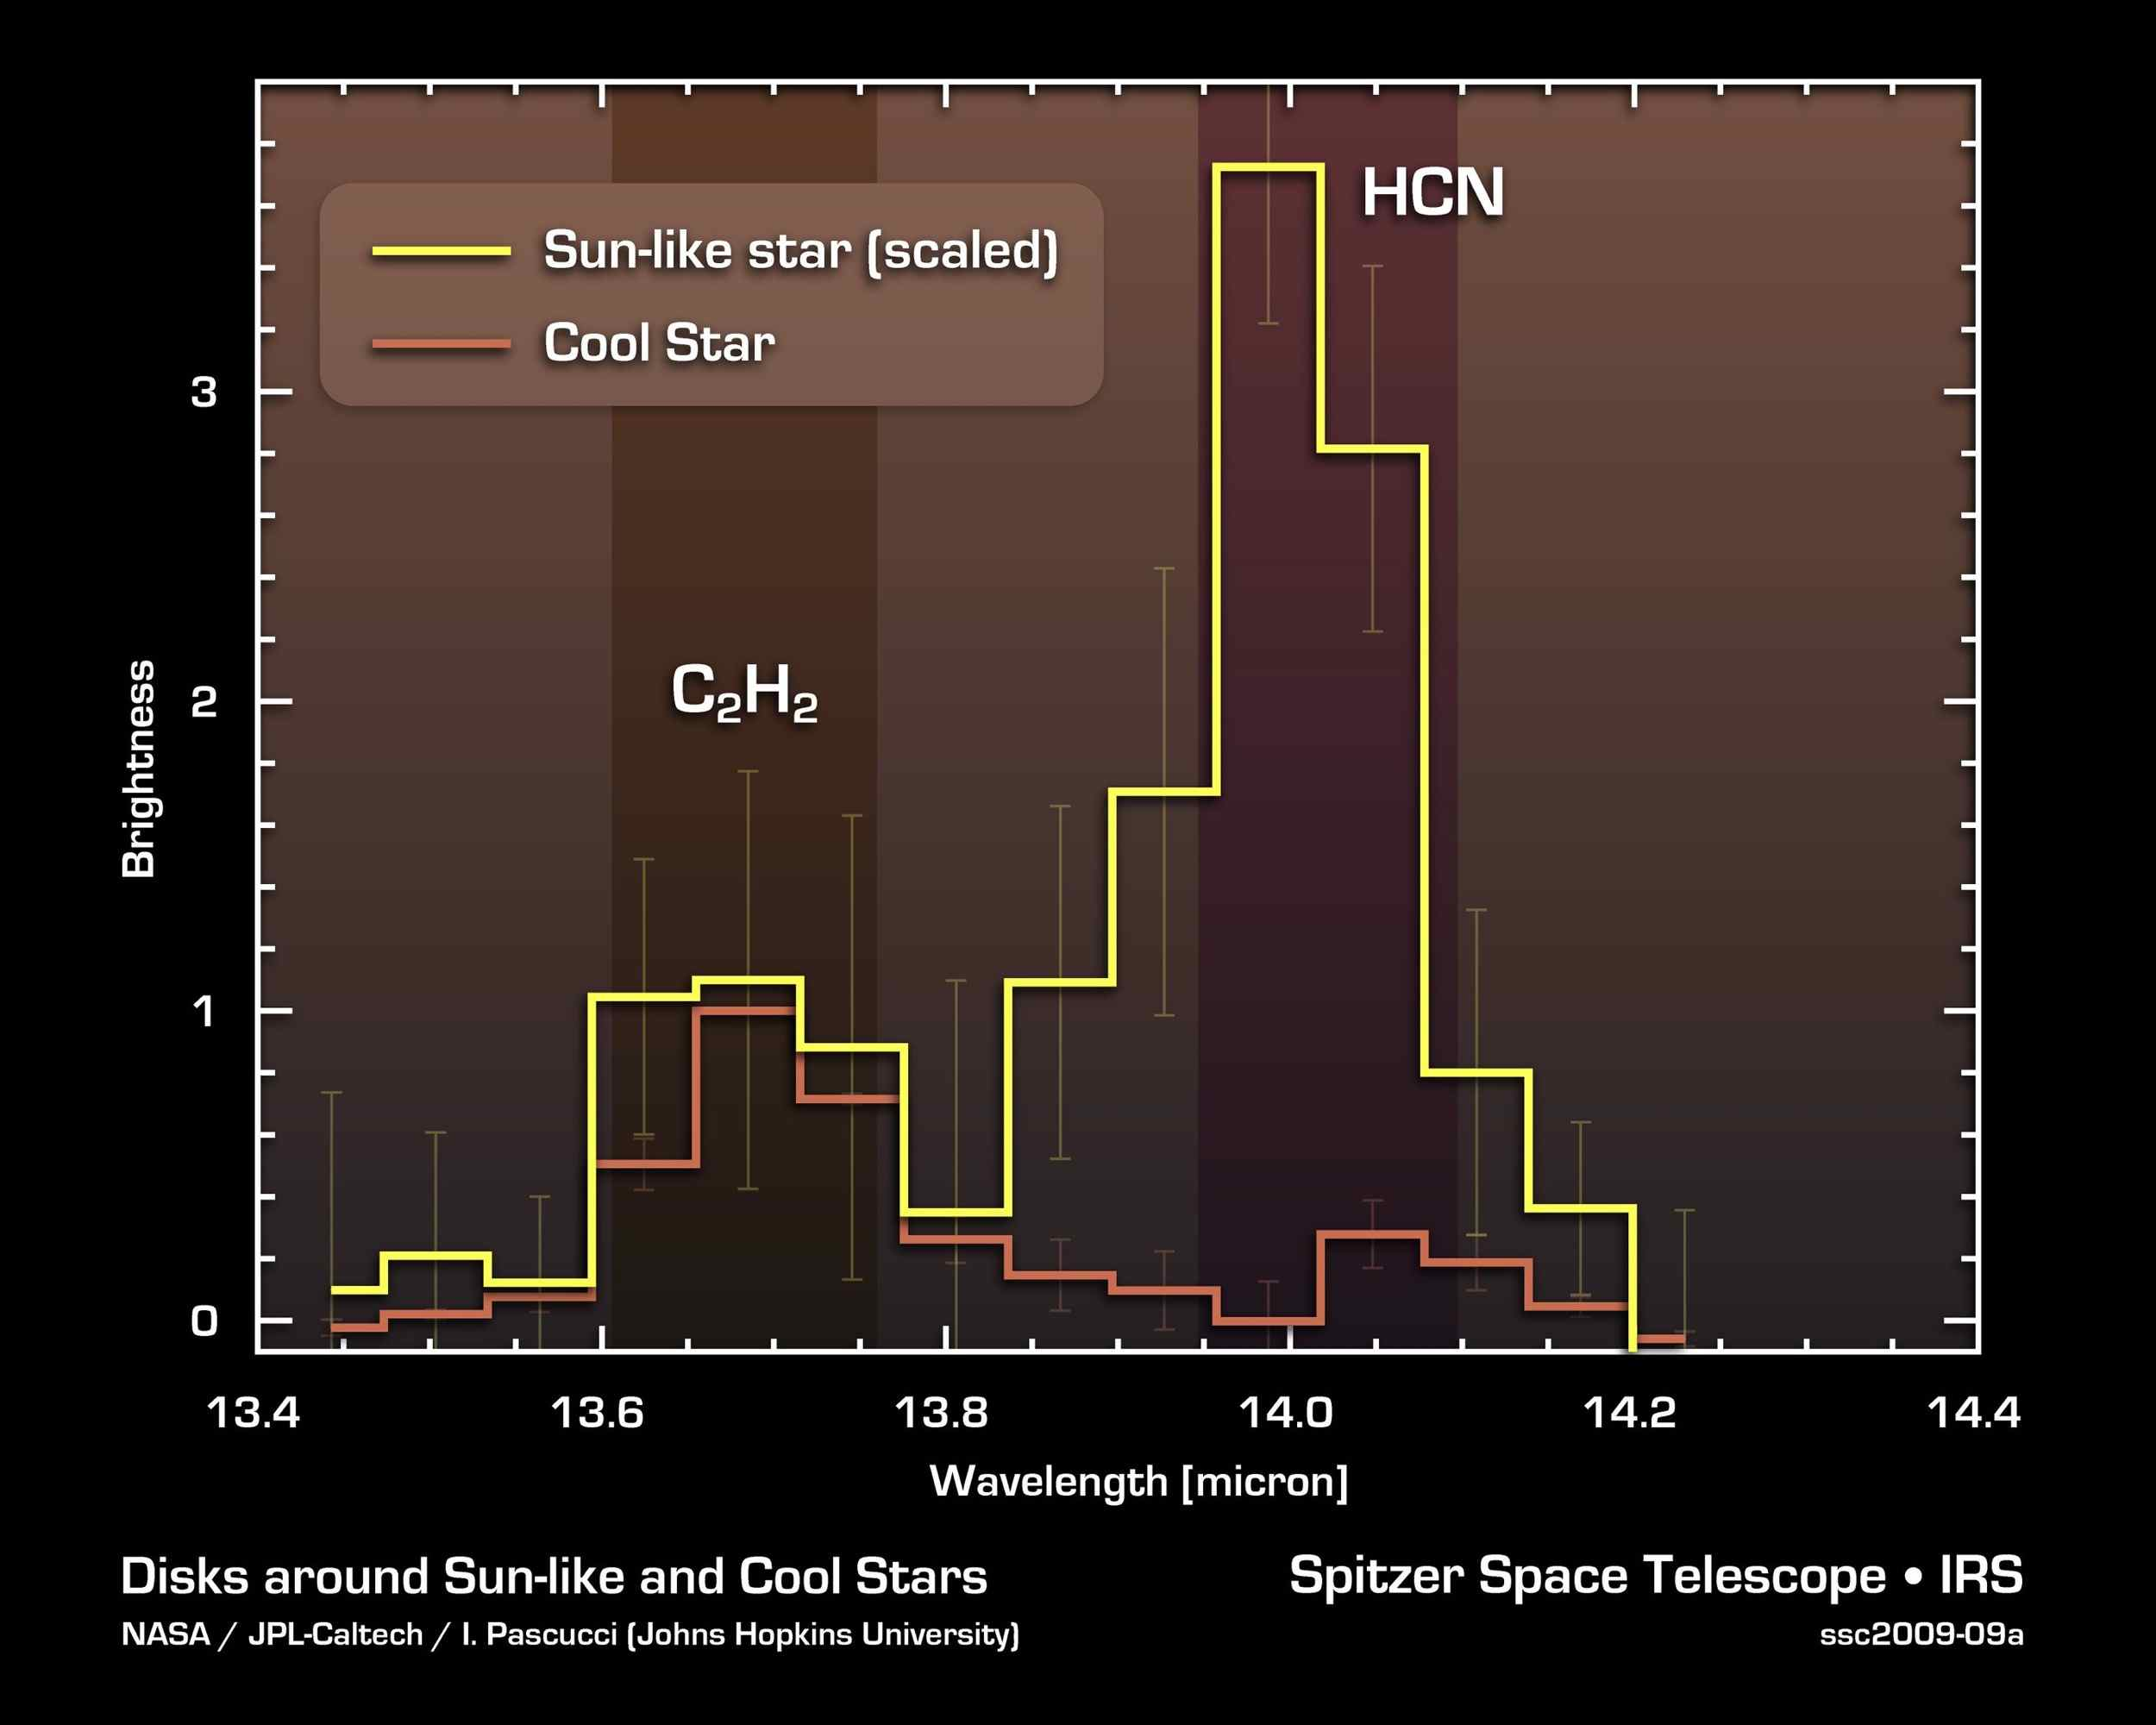 NASA's Spitzer Space Telescope detected a prebiotic, or potentially life-forming, molecule called hydrogen cyanide (HCN) in the planet-forming disks around yellow stars like our sun, but not in the disks around cooler, reddish stars.